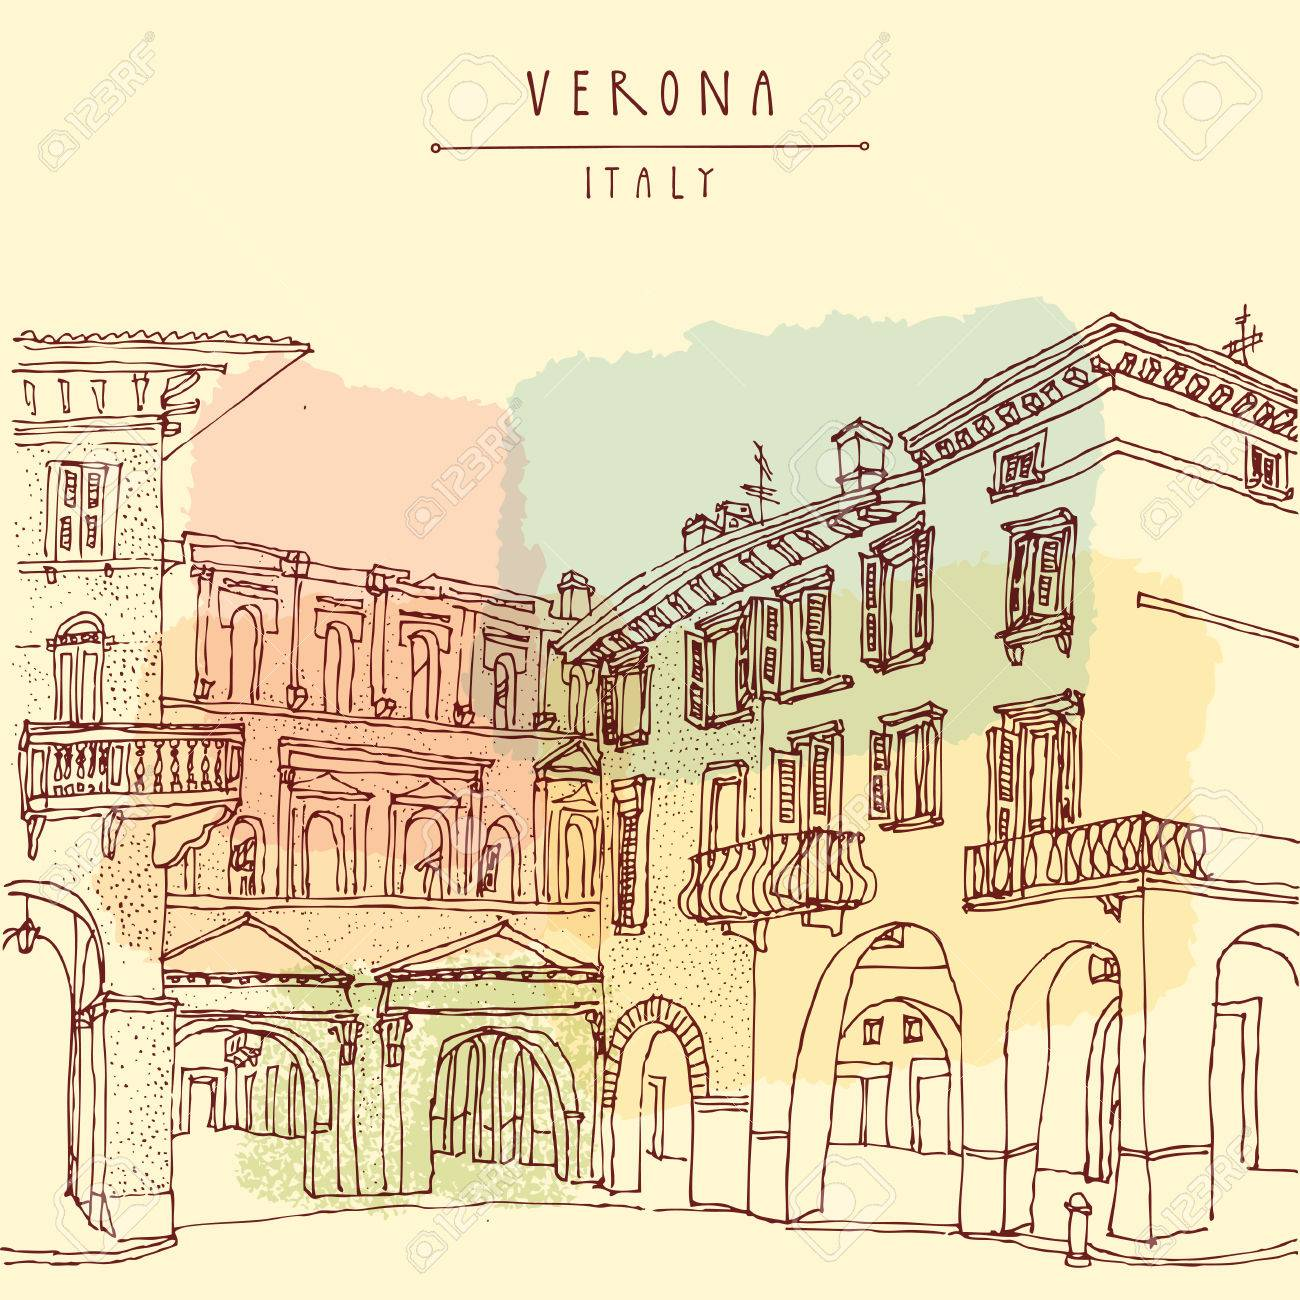 Verona, Italian city, Europe. Old historic buildings. Travel sketch. Vintage hand drawn touristic postcard or poster, vector illustration - 47488335